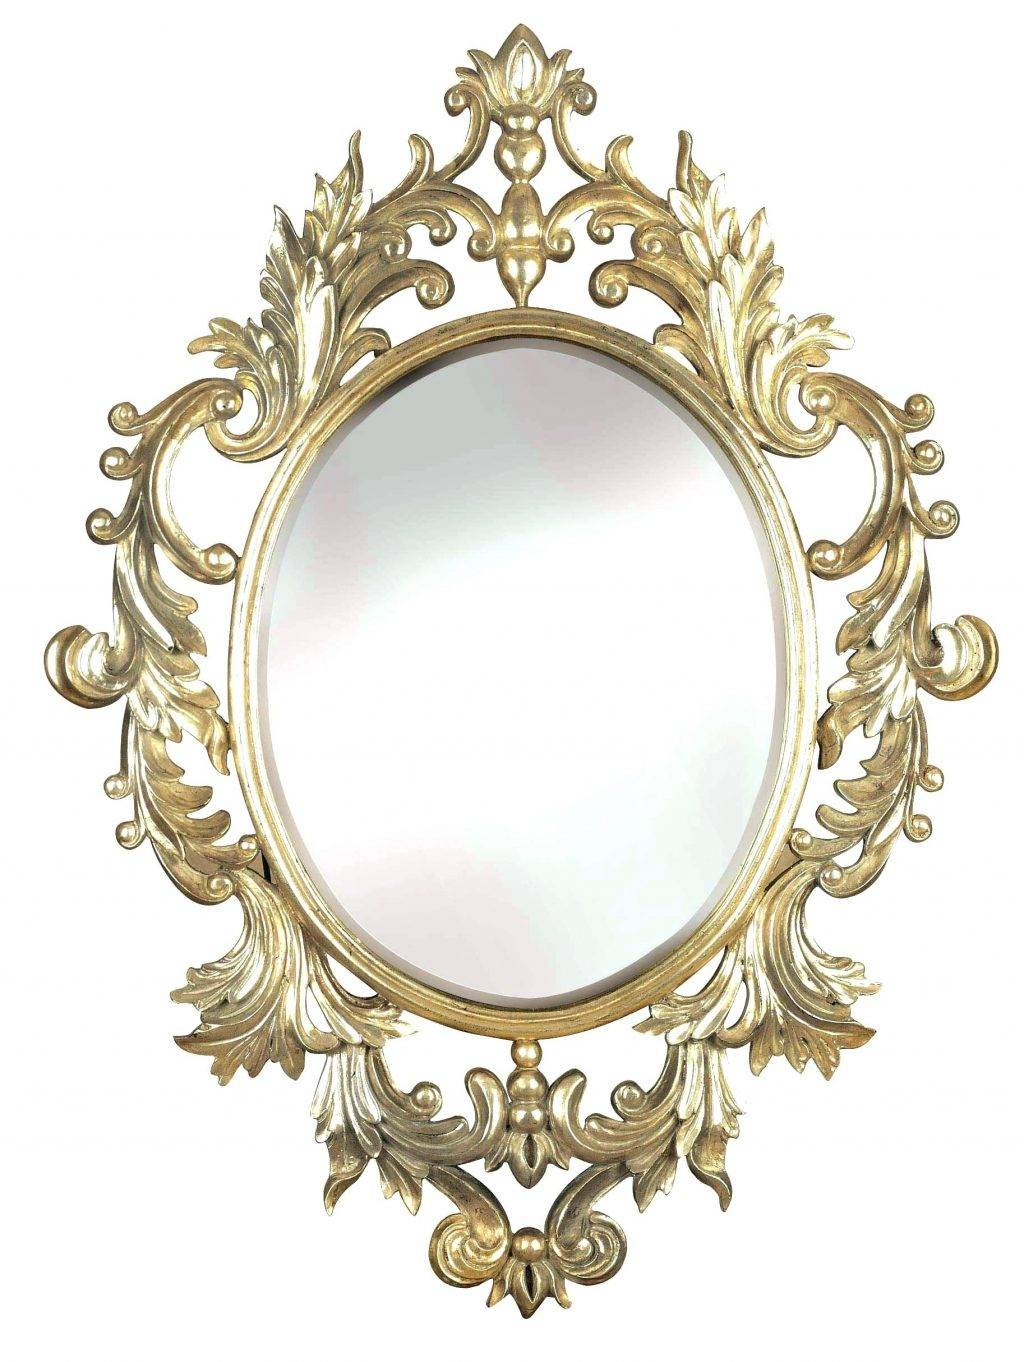 Wall Mirrors ~ Cheap Fancy Decorative Wall Mirror For Bathroom within Fancy Mirrors (Image 14 of 15)